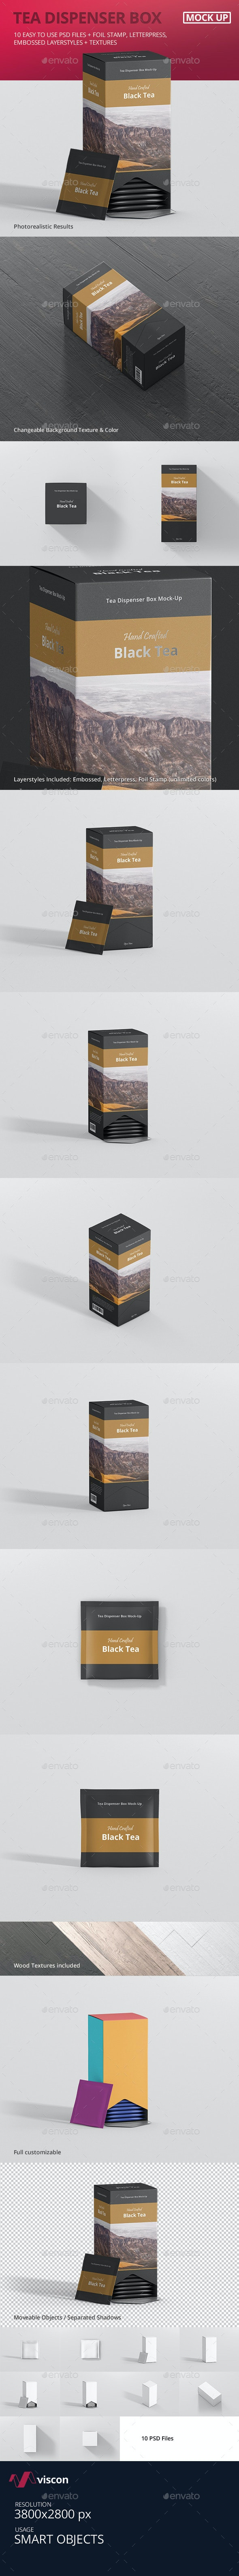 Tea Dispenser Box Mockup - Food and Drink Packaging